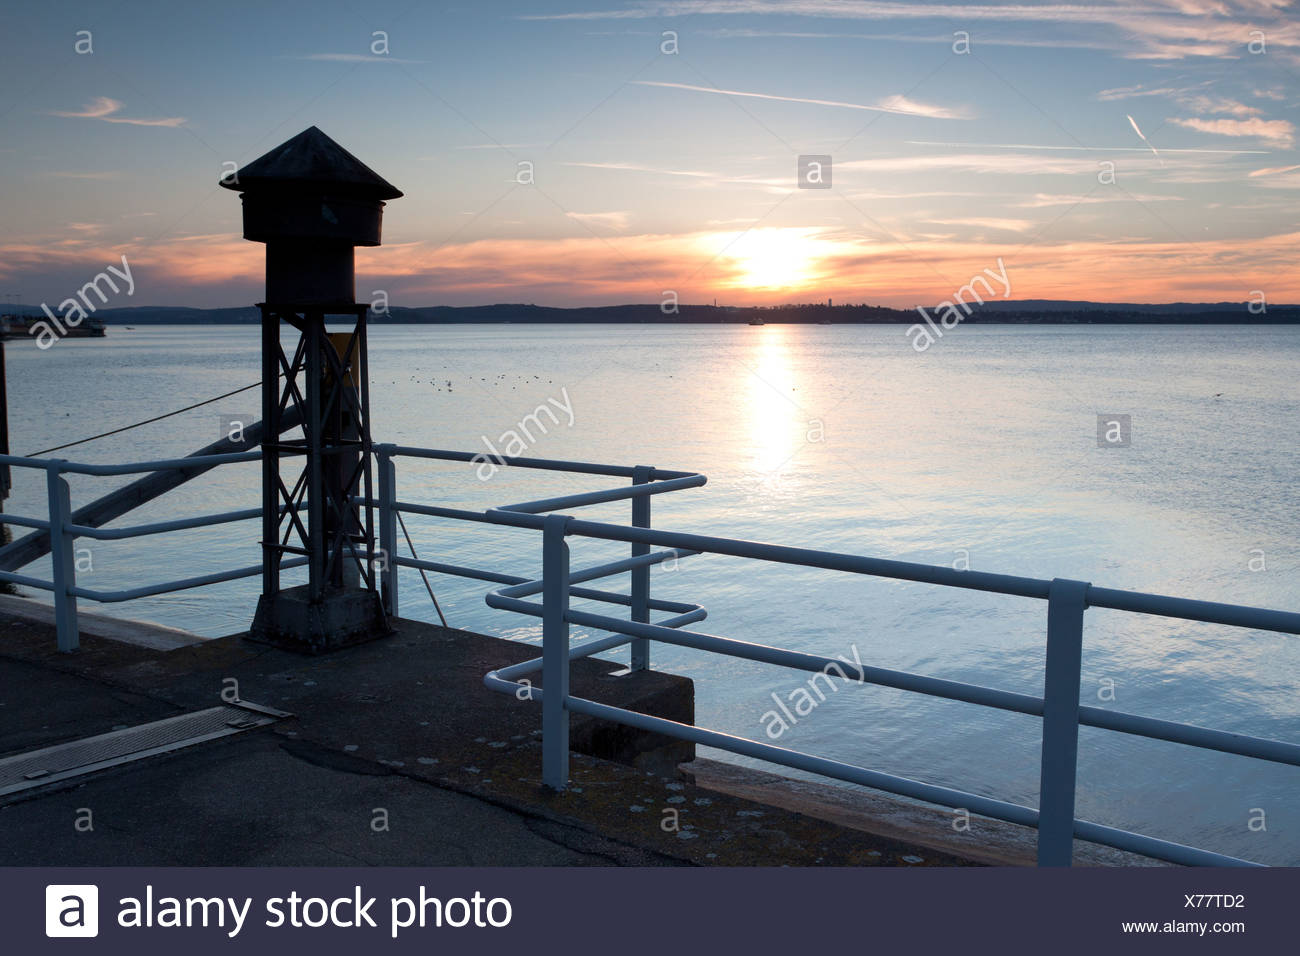 Old fog horn on the pier in Meersburg on Lake Constance, overlooking the lake towards Konstanz at sunset, Baden-Wuerttemberg - Stock Image